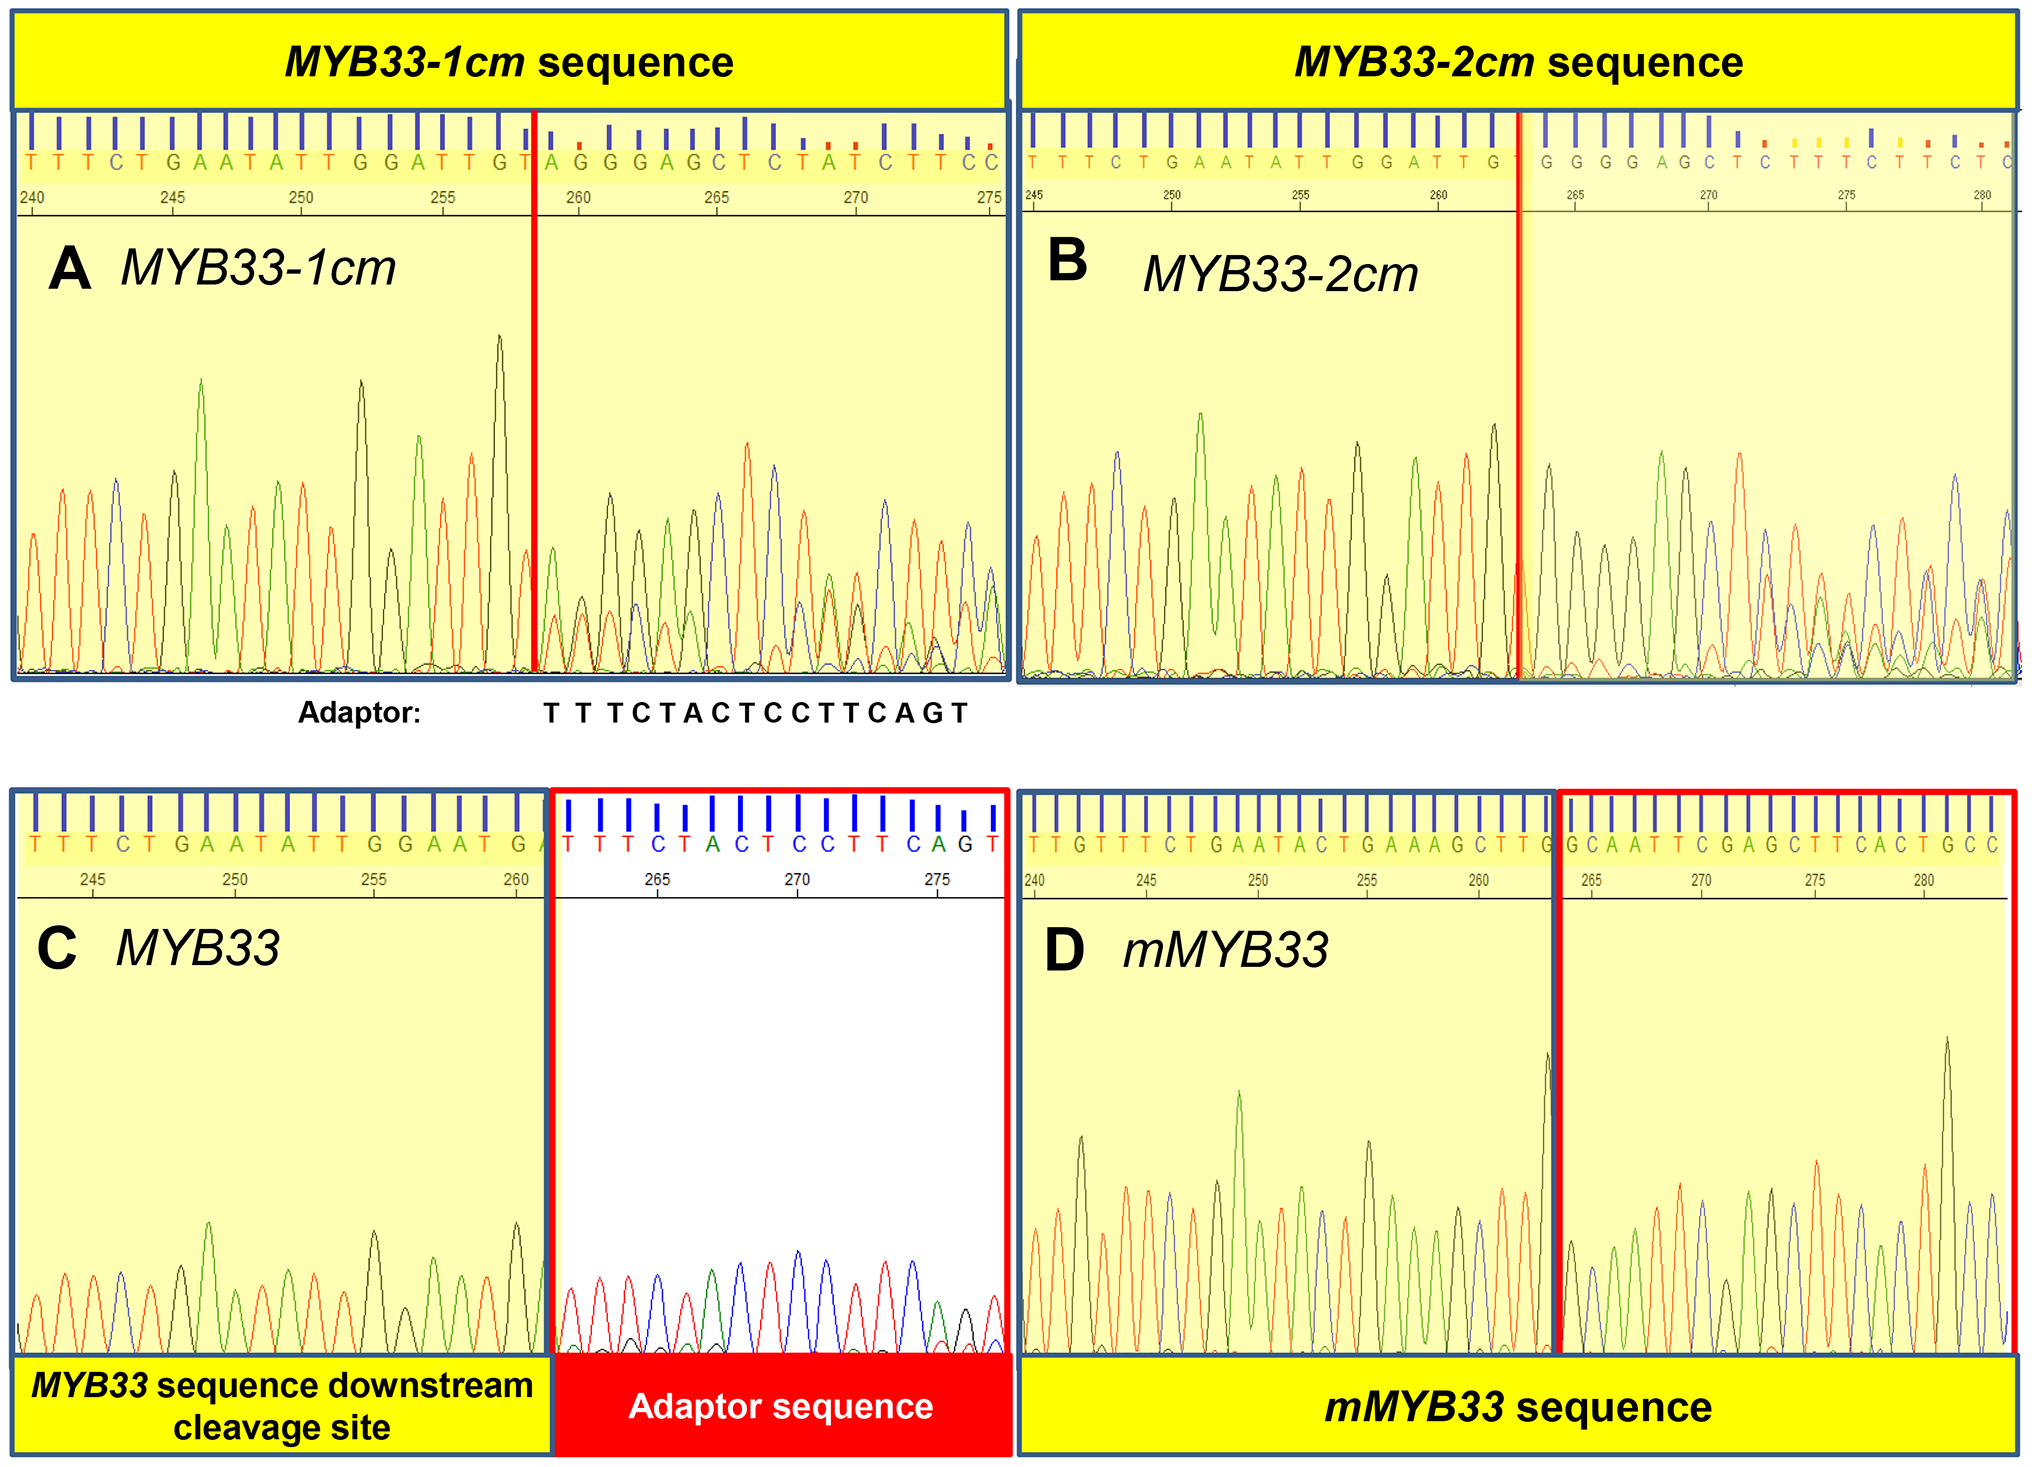 MiR159-guided cleavage is attenuated in <i>MYB33-1 cm</i> and <i>MYB33-2 cm</i> plants.